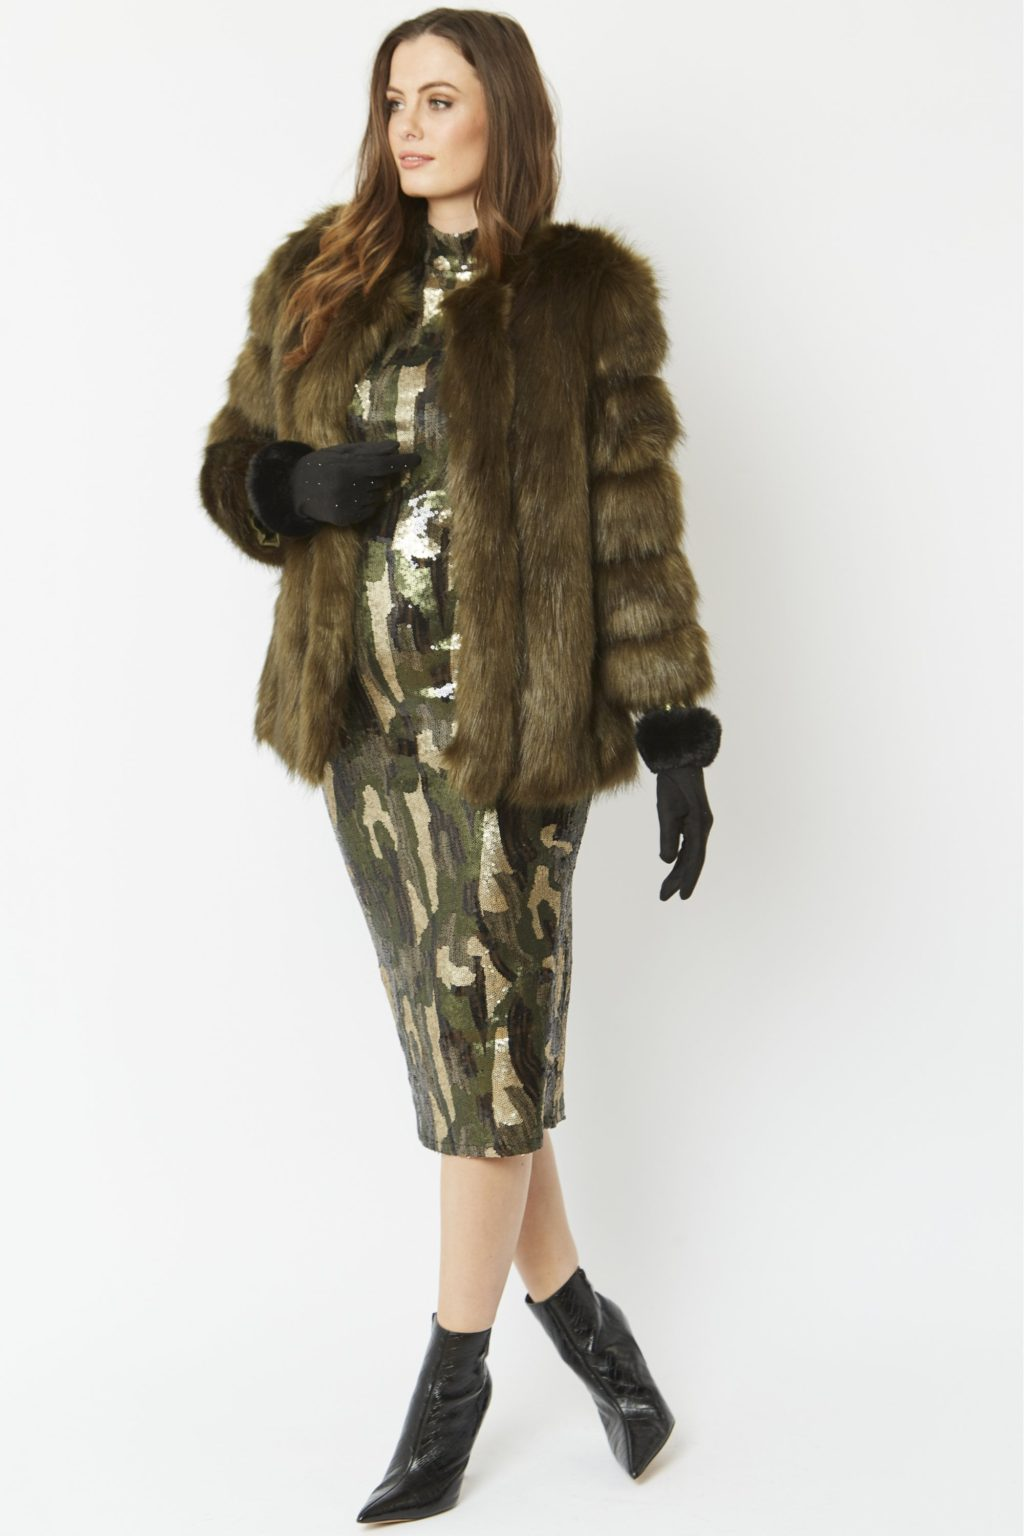 Faux-Fur-Coat-2-1024x1536 140+ Lovely Women's Outfit Ideas for Winter 2020 / 2021